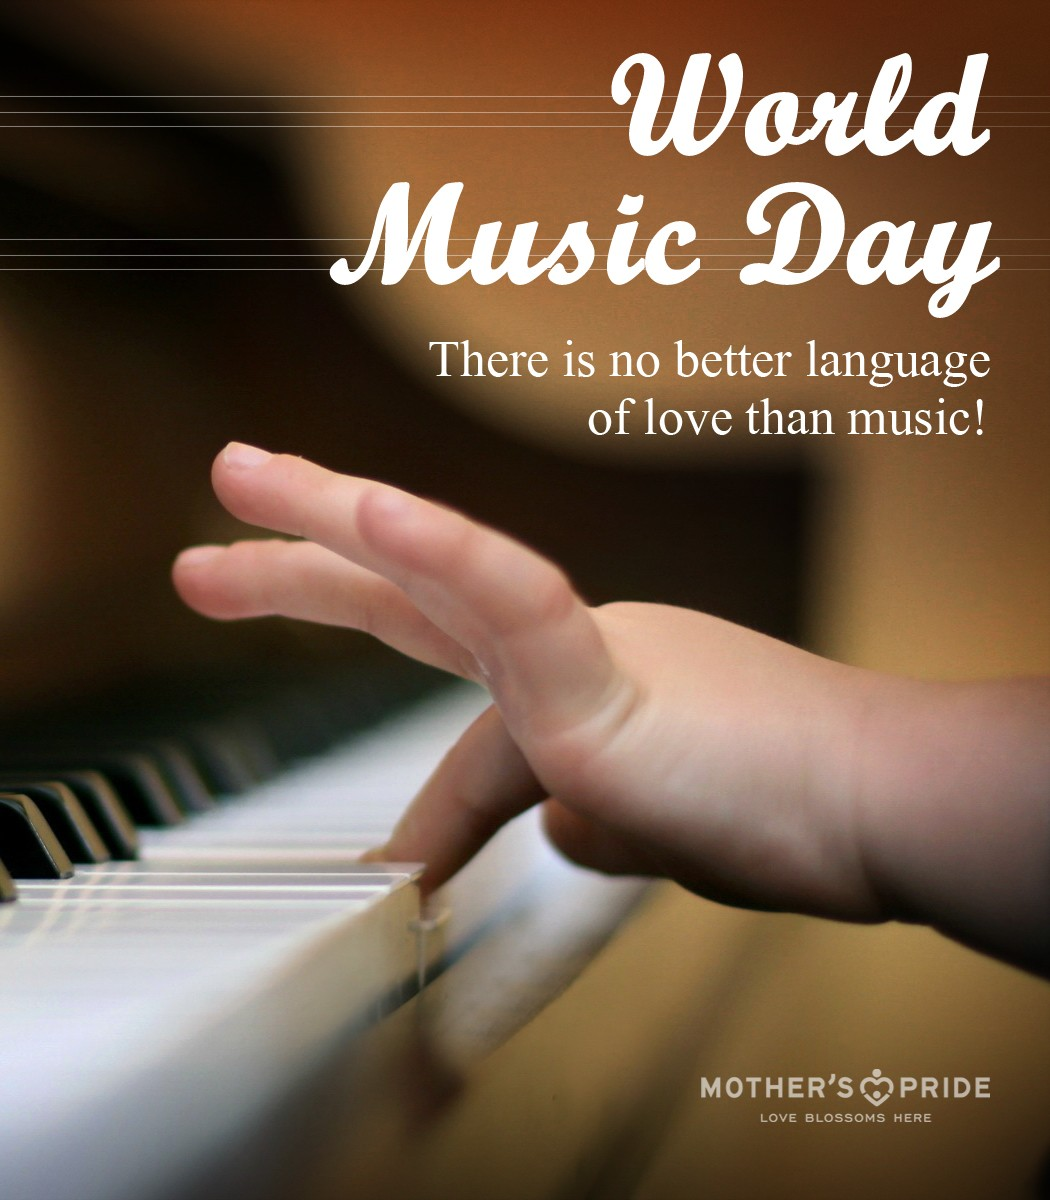 MOTHERS PRIDE FAMILY WISHES A HAPPY & HARMONIOUS WORLD MUSIC DAY